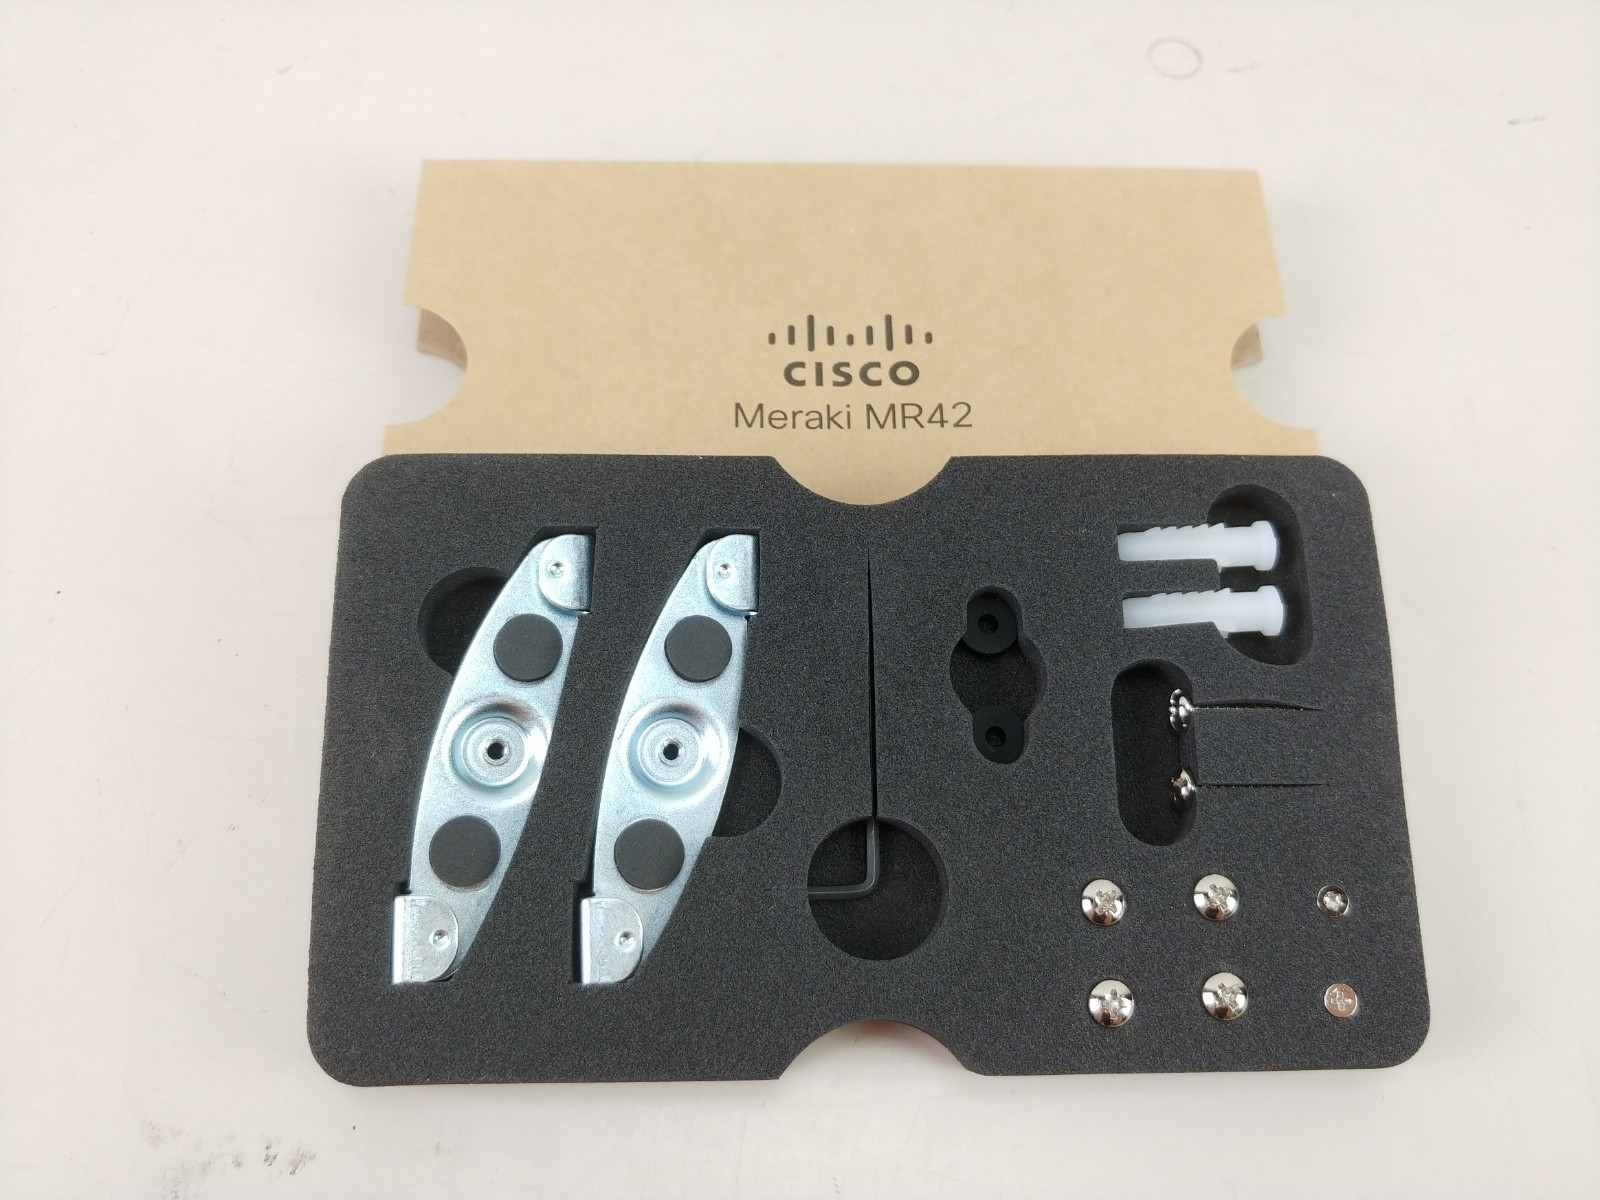 New Cisco Meraki MR42 Cloud Managed Access Point Hardware Mounting Kit Screws